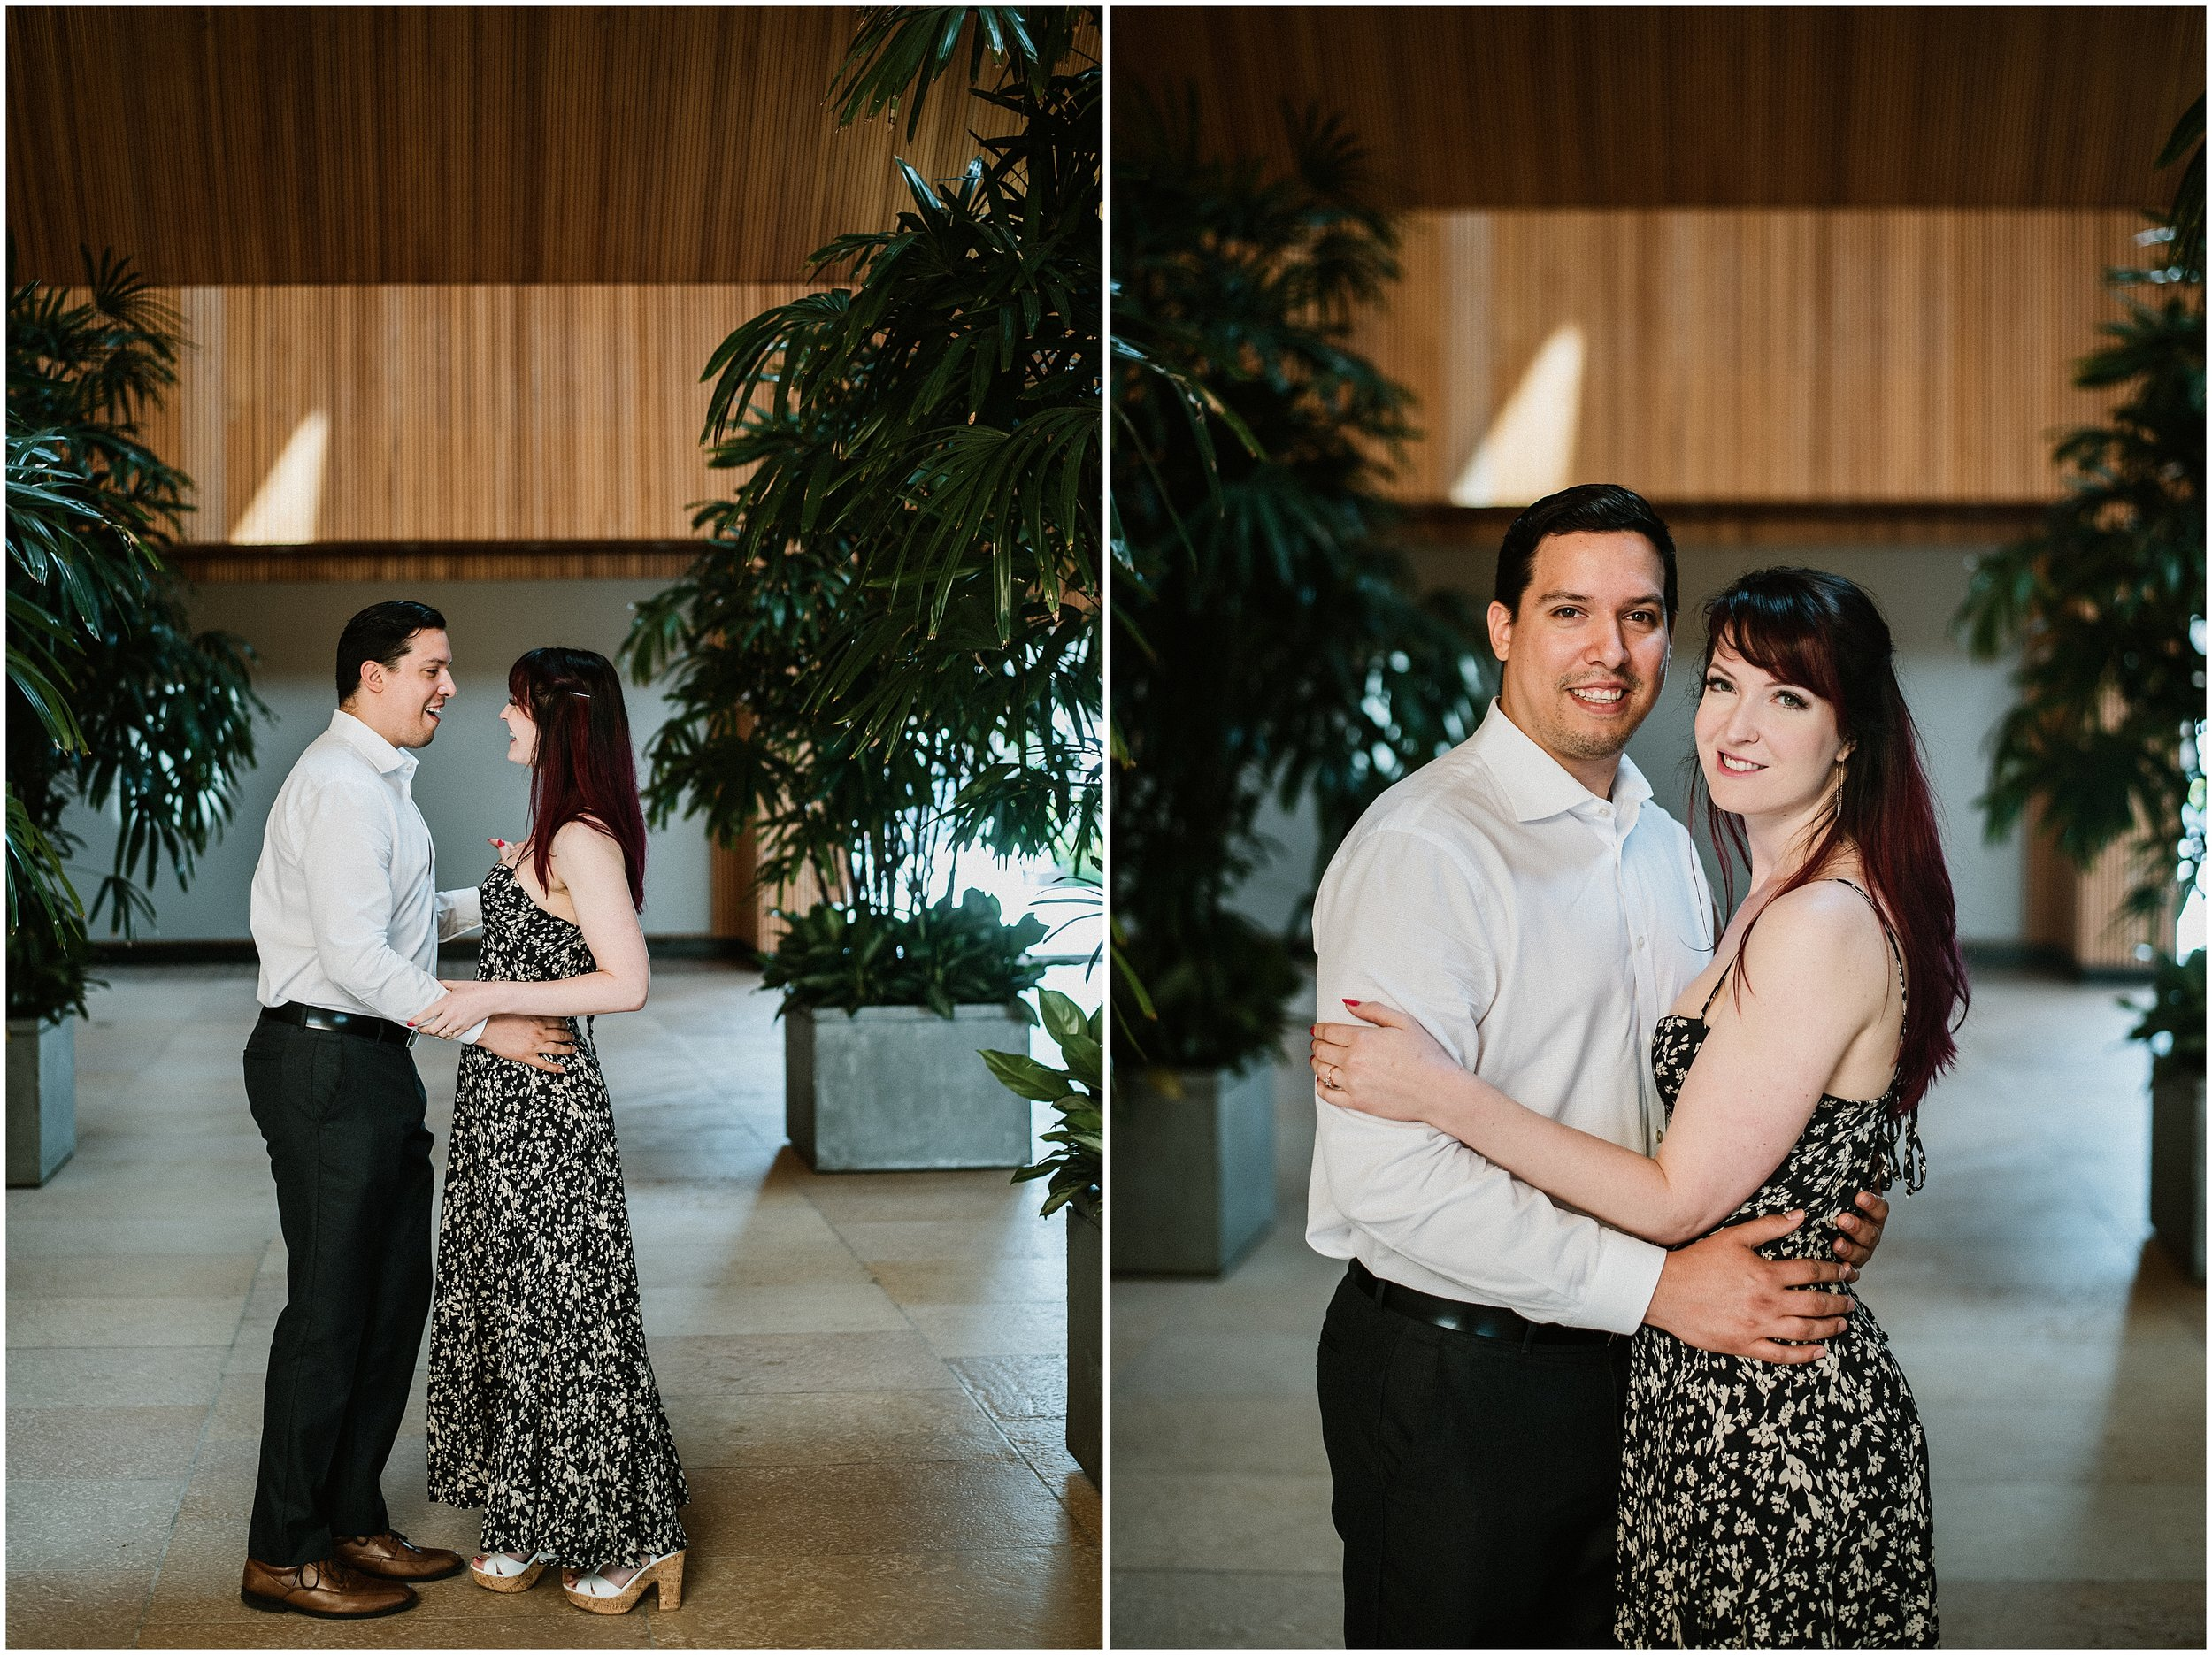 Candace Sims Photography | Sarah And Marcel | Chicago Botanic Garden Engagement Session | Chicago, IL